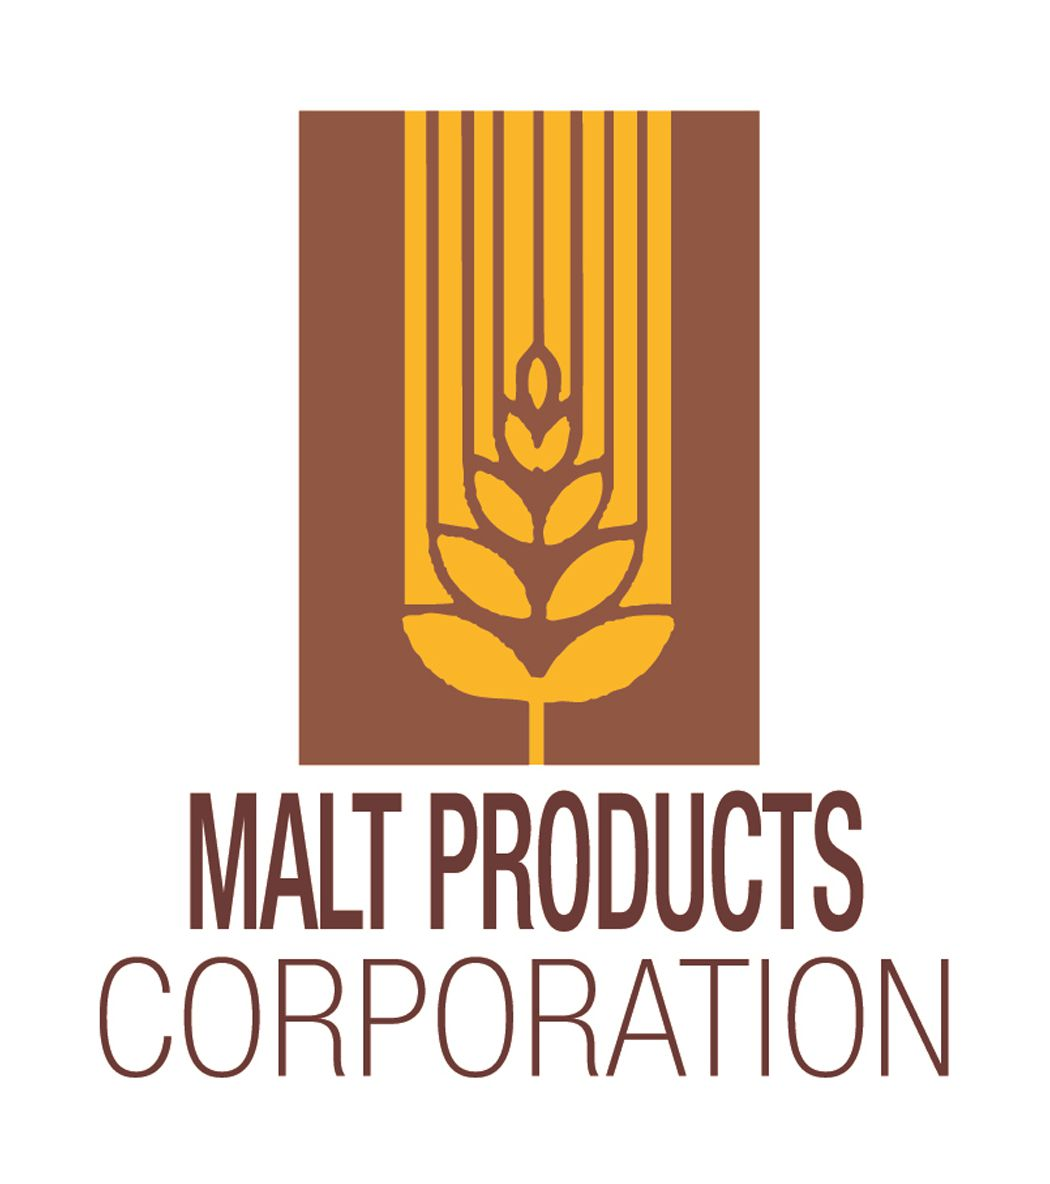 MALT PRODUCTS logo